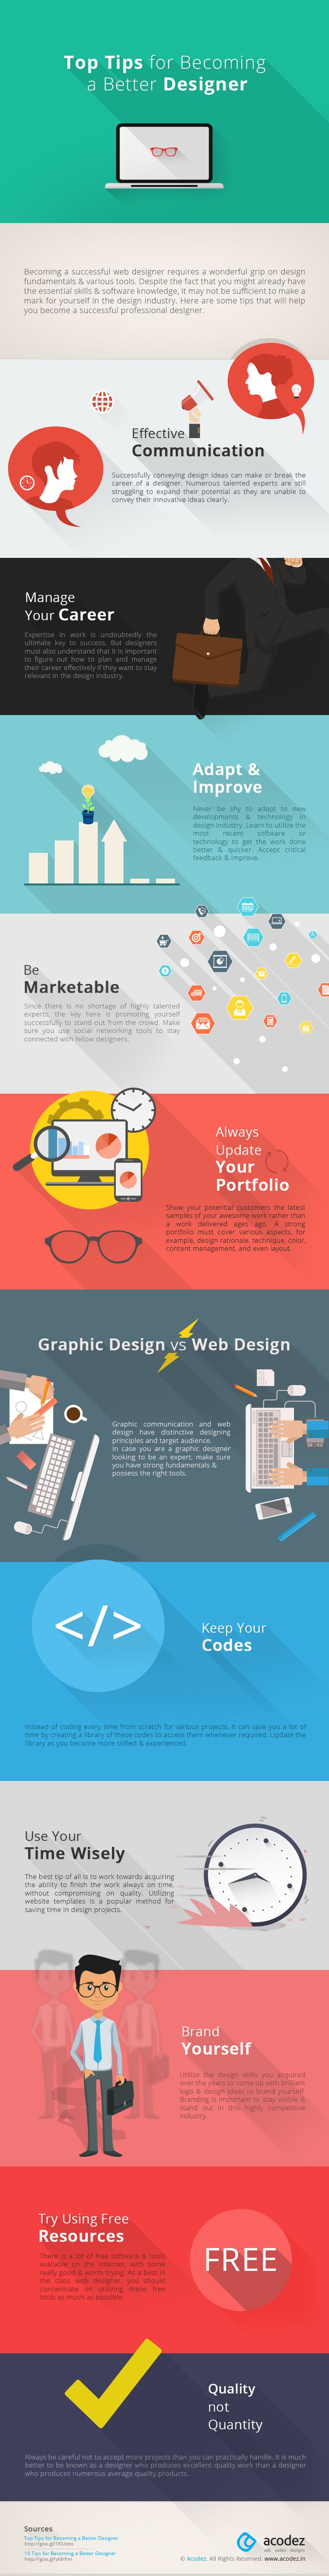 Web and Visual Design: Top Tips for Becoming a Better Designer